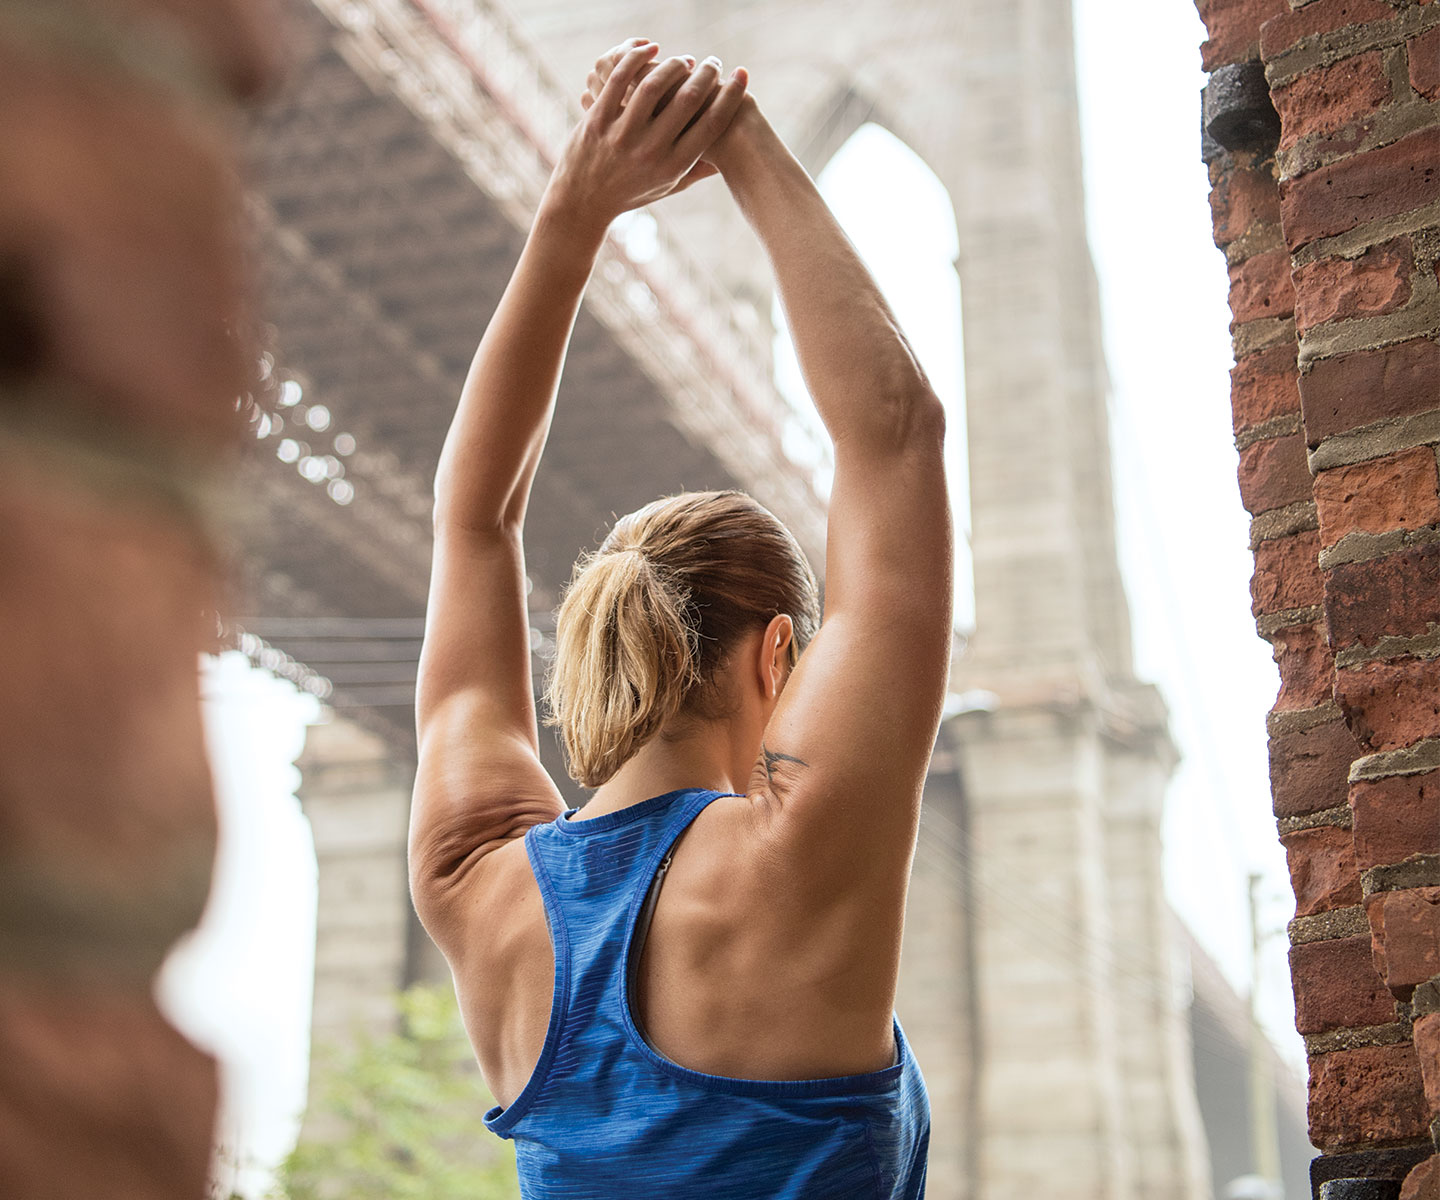 A woman stretching while working out in Brookyln Bridge Park.